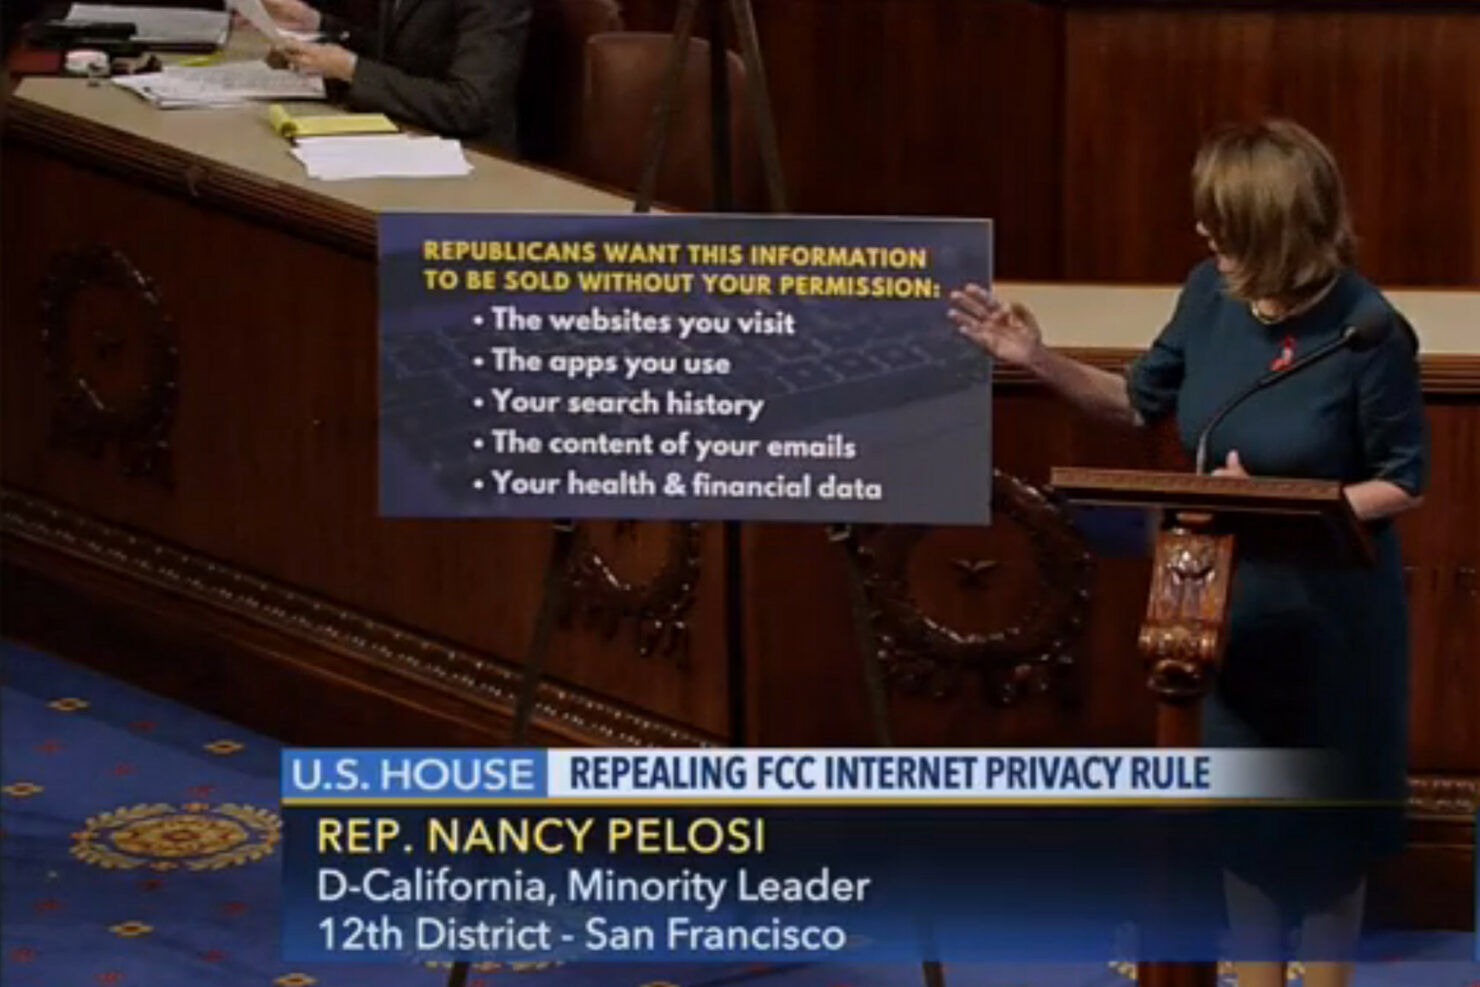 FCC isp privacy rules